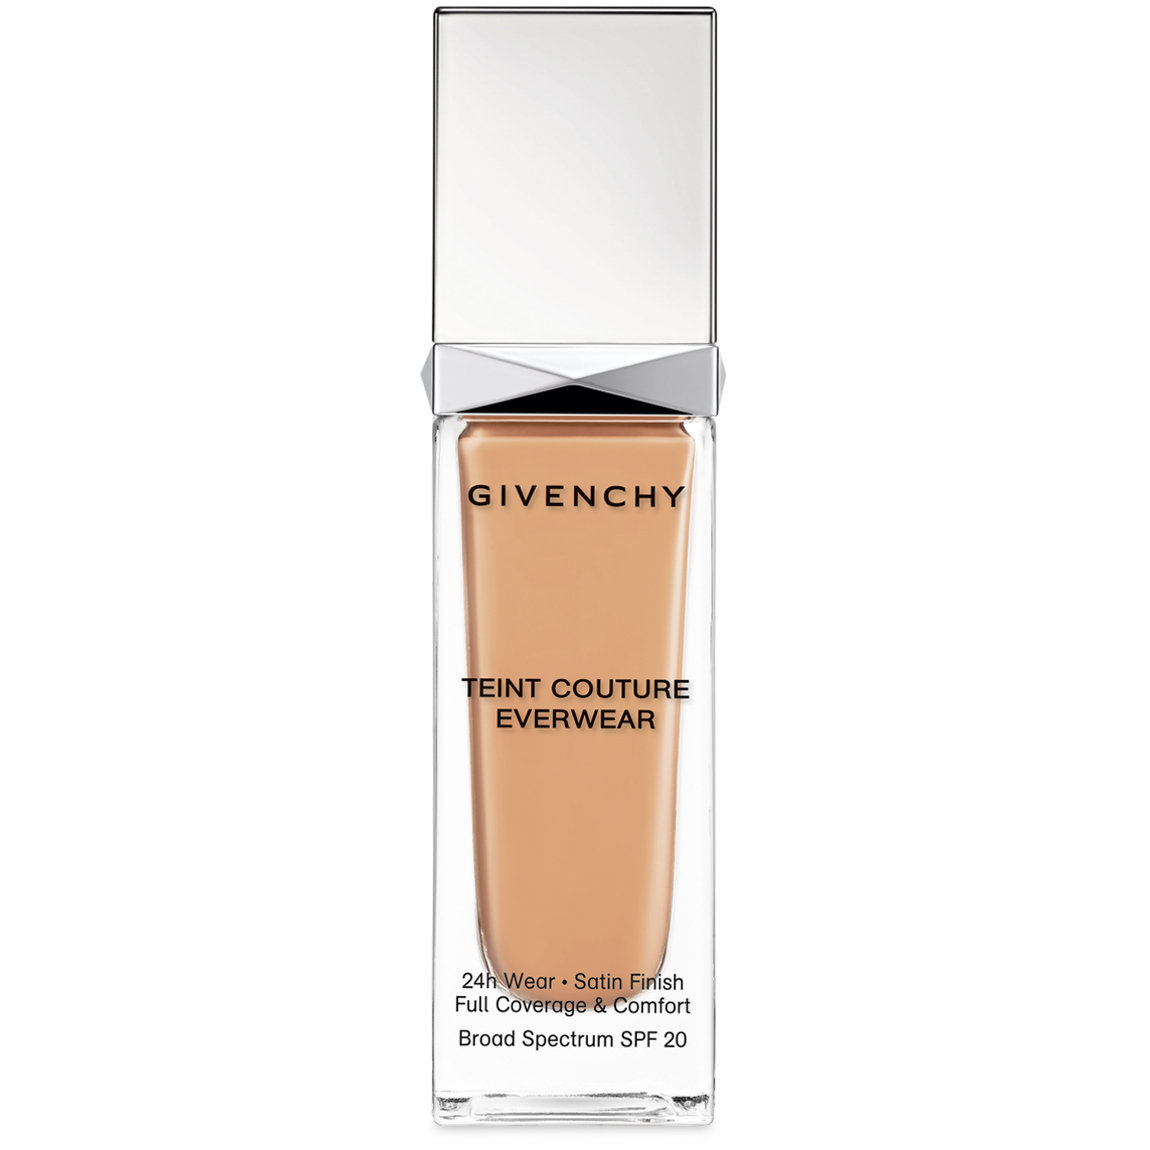 Givenchy Teint Couture Everwear Fluid Foundation P200 alternative view 1.